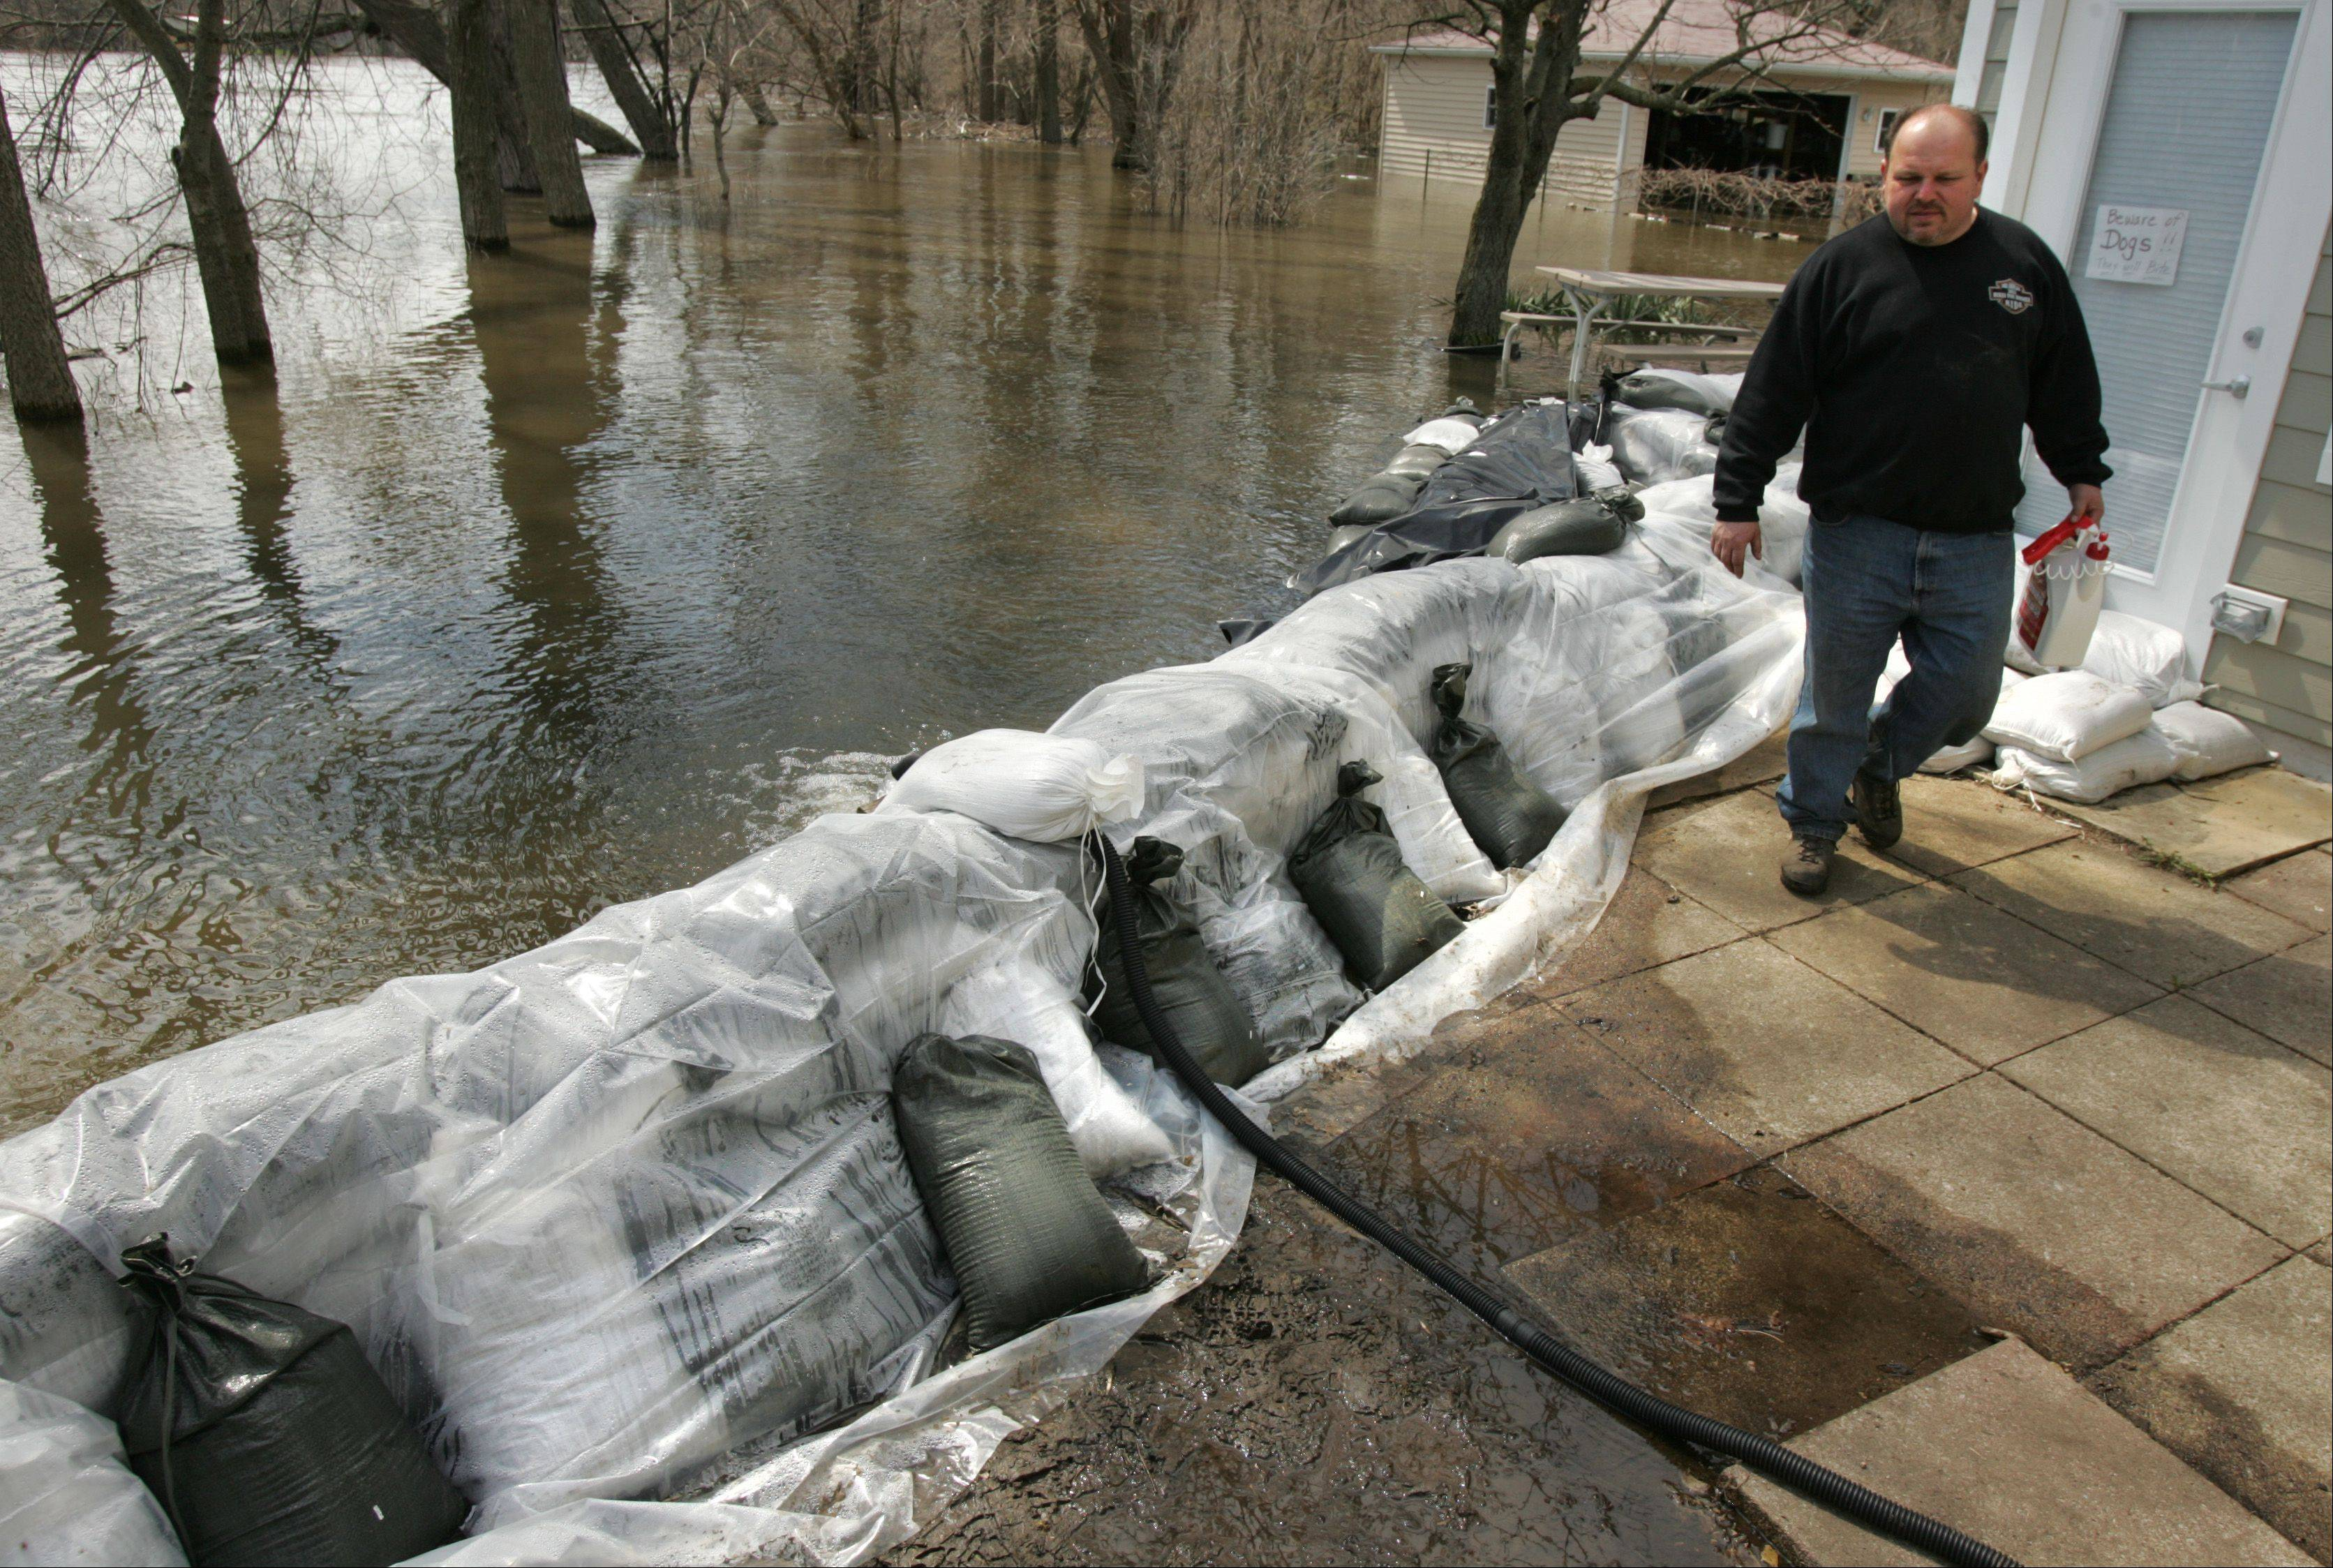 Algonquin resident Tony Angarola inspects the sandbag wall currently holding back about a foot of water from the Fox River Monday morning. The village has distributed more than 14,000 sandbags to its residents, an official said.